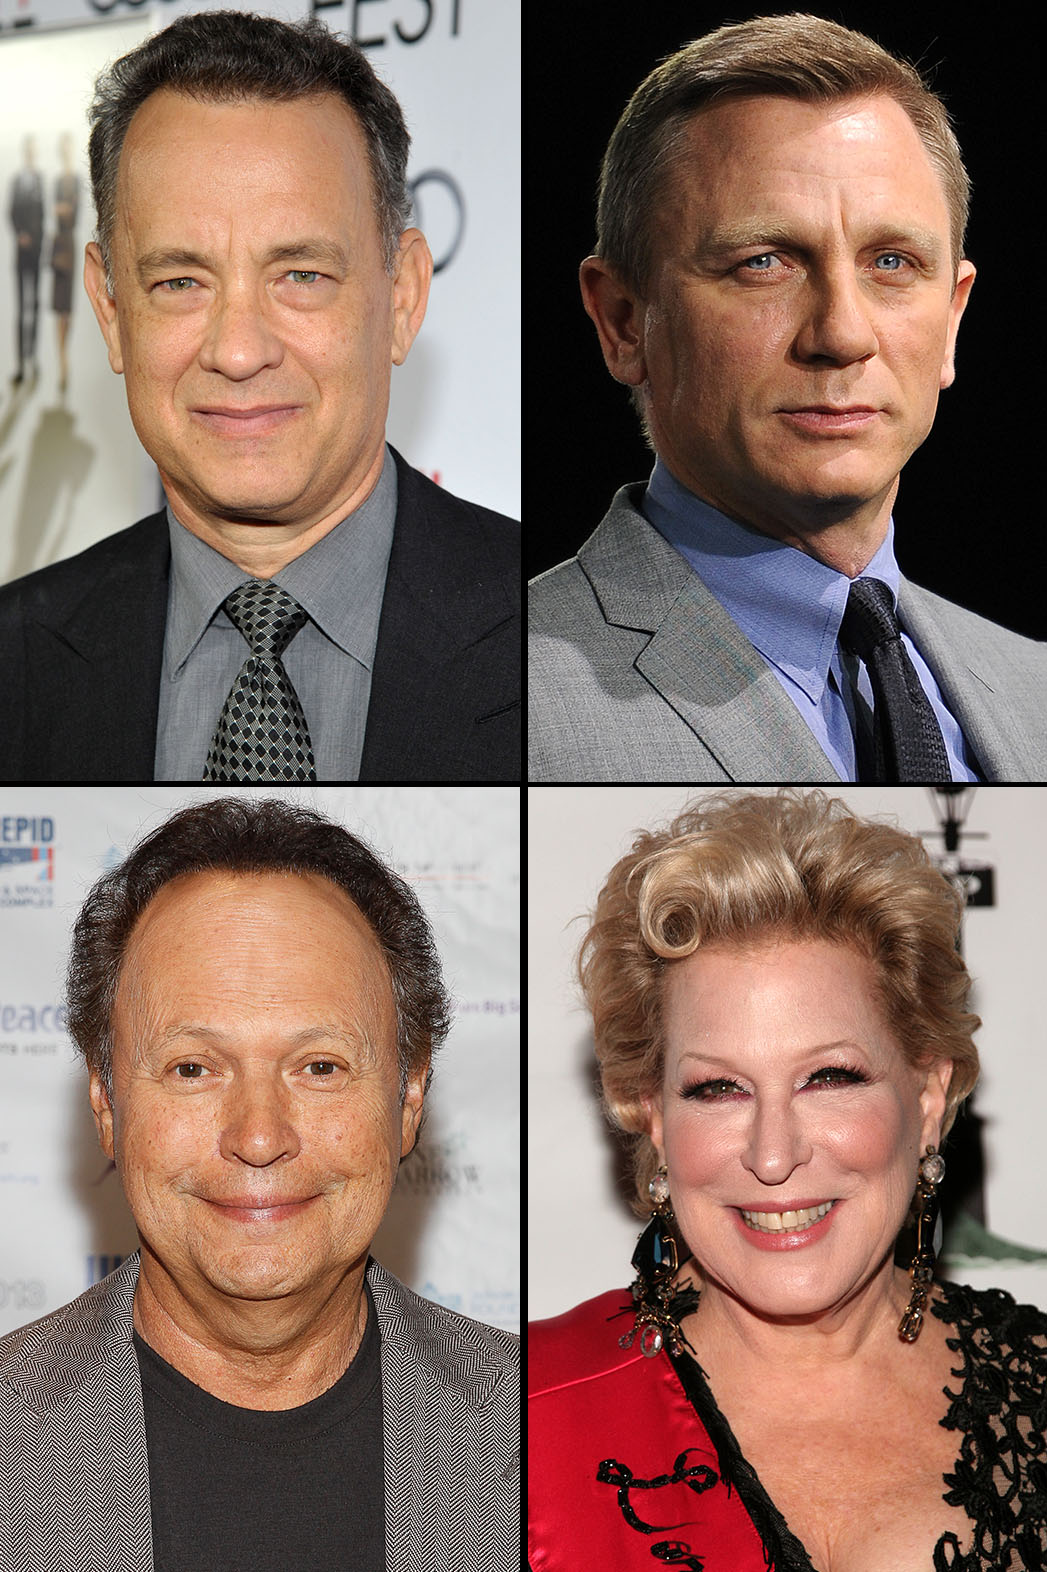 Tom Hanks Daniel Craig Bette Midler Billy Crystal - P 2013